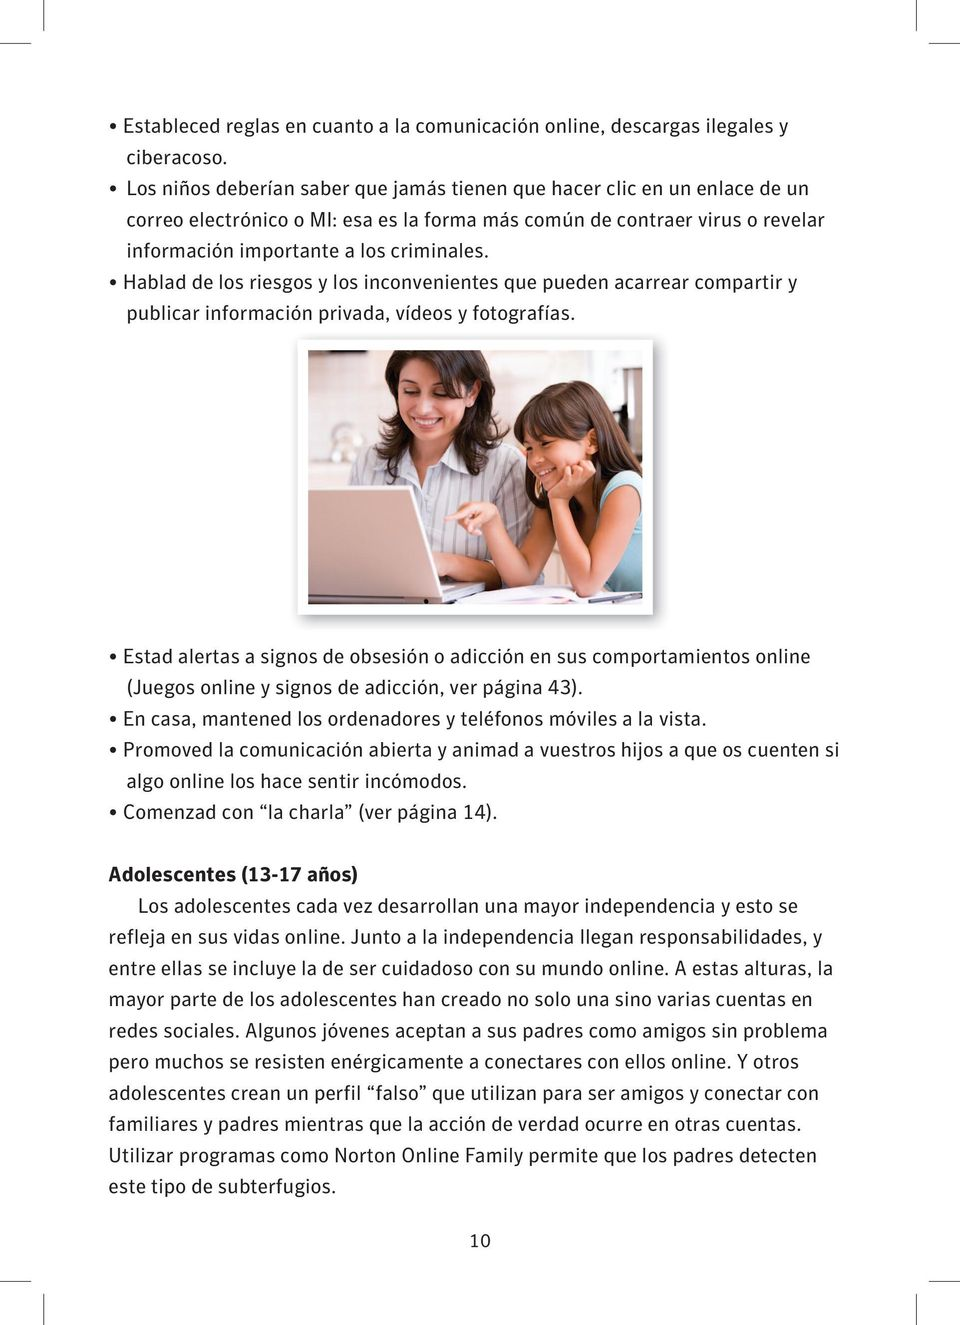 (see Online Gaming and Signs of Addiction, see page 43). Los Keep niños computers deberían saber and cell que phones jamás visible tienen in que the hacer house.